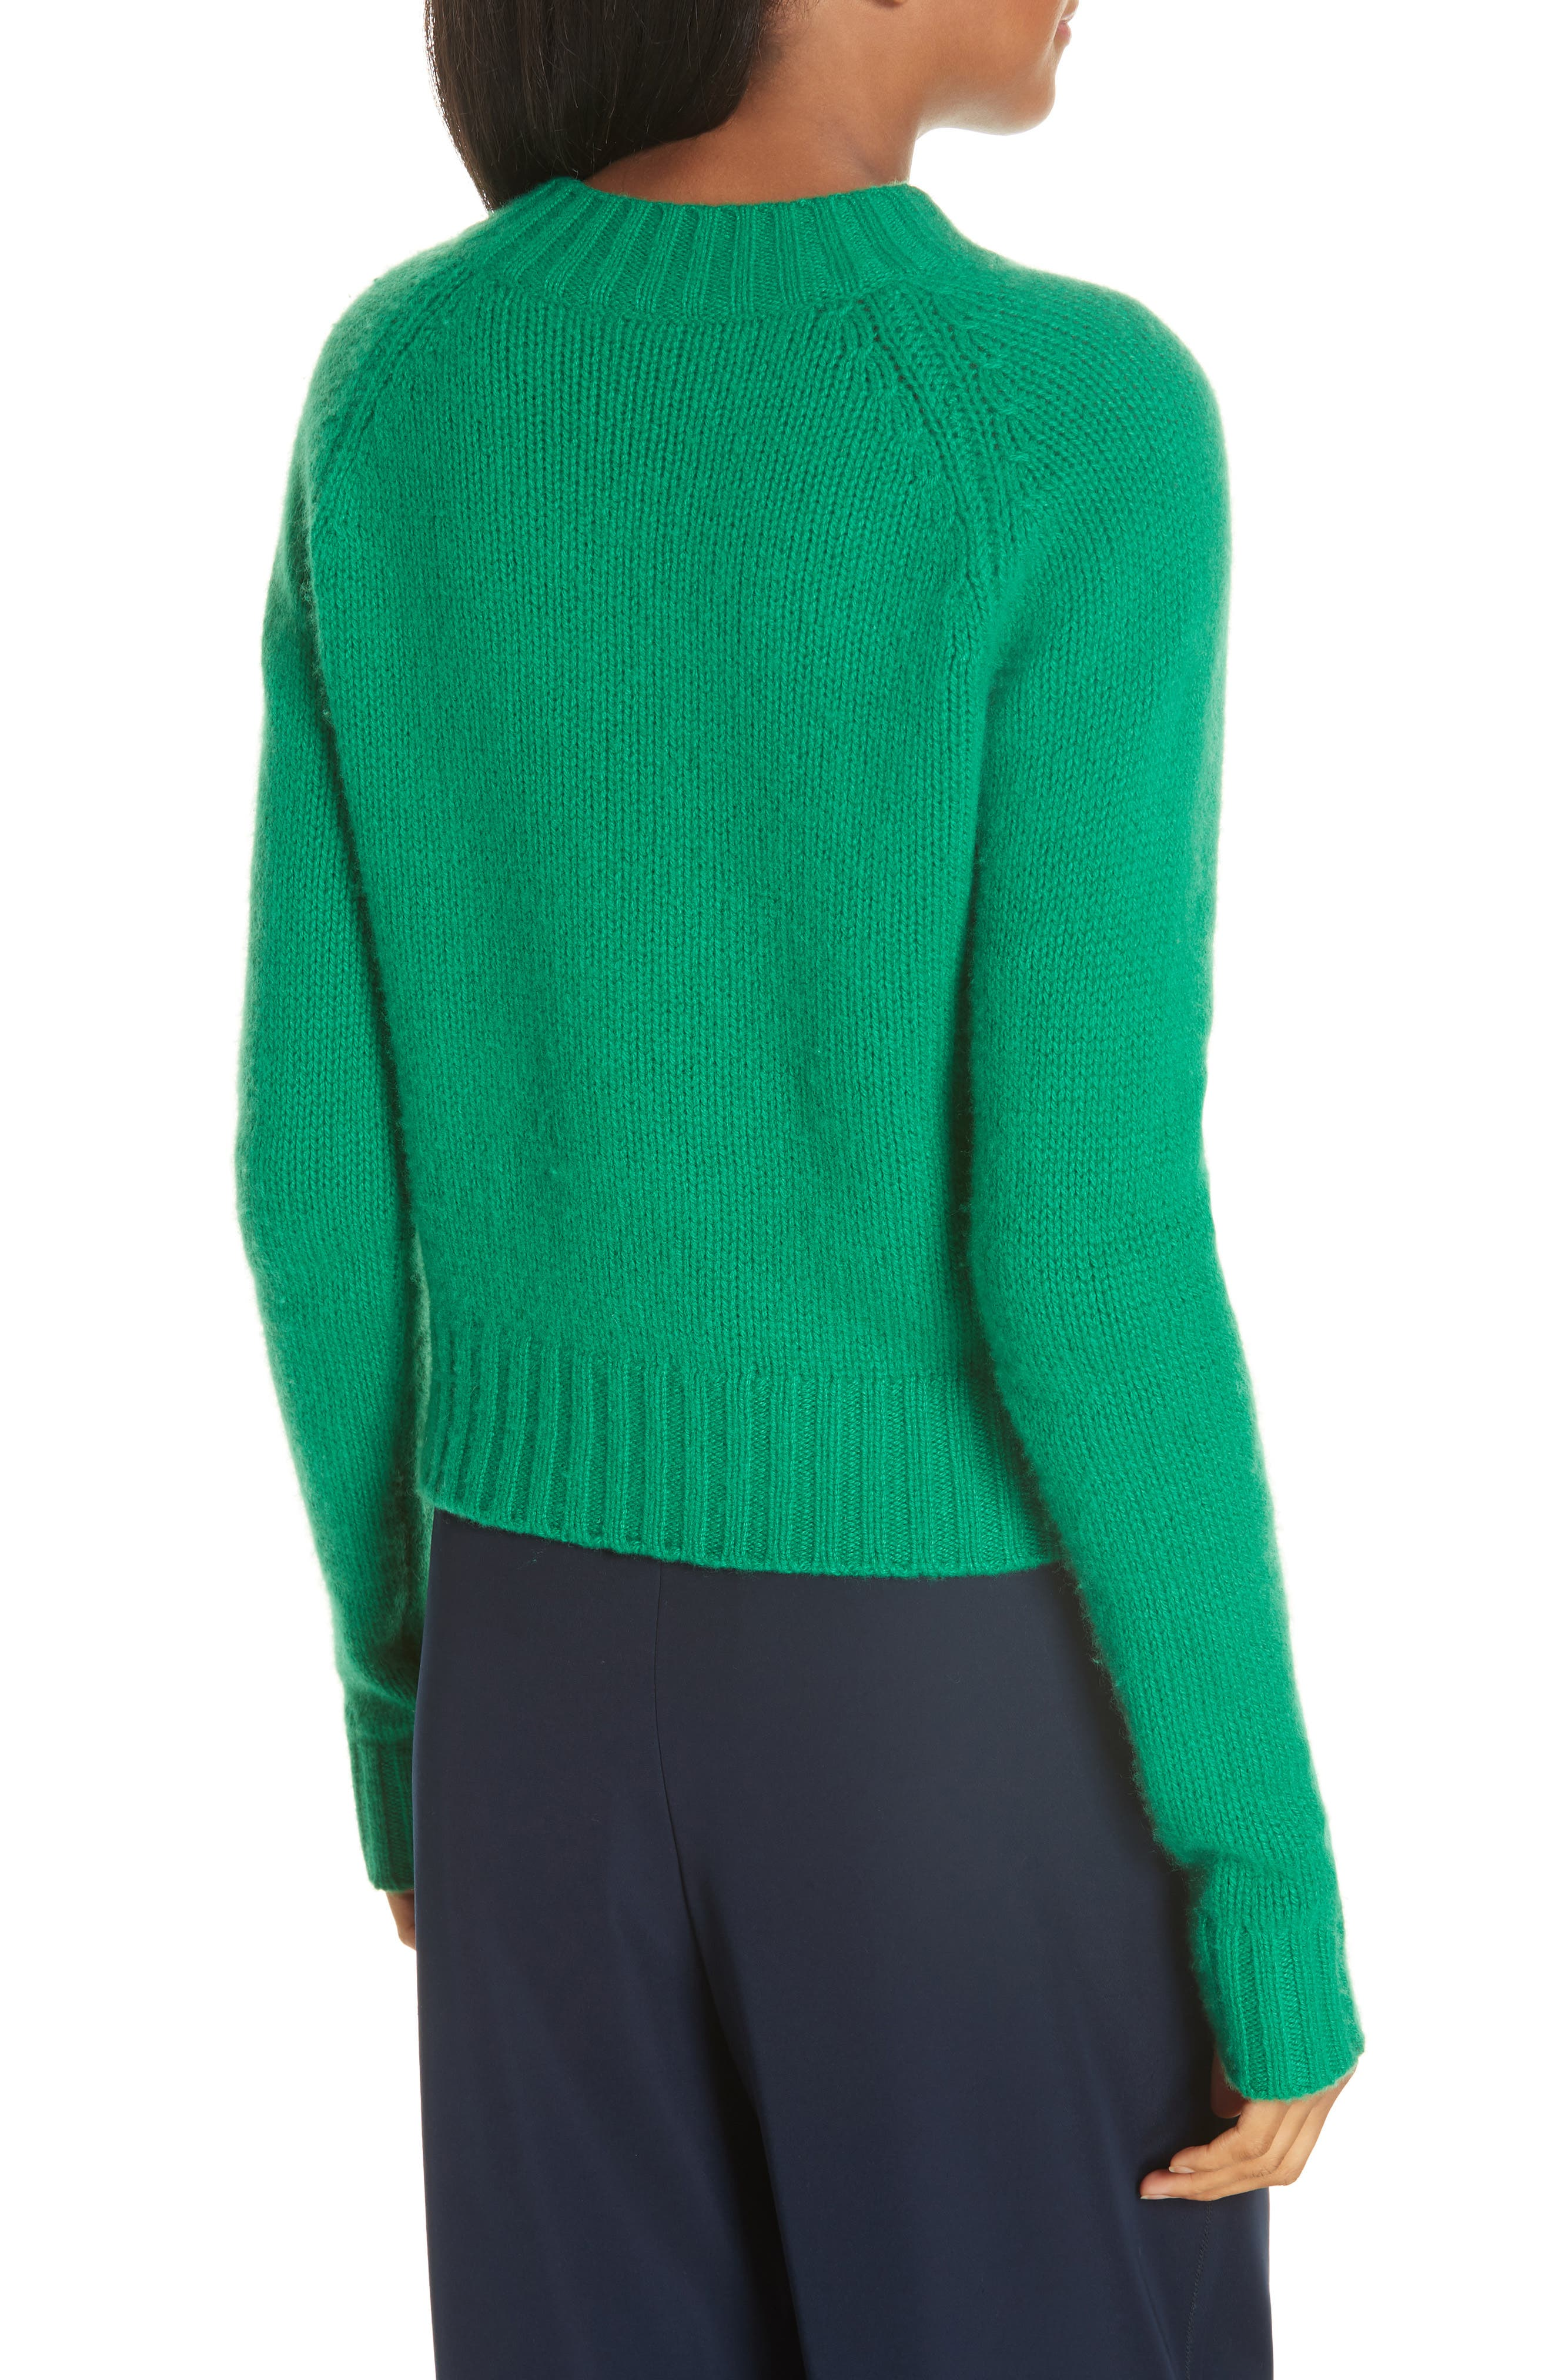 Shrunken Cashmere Sweater,                             Alternate thumbnail 2, color,                             LEAF